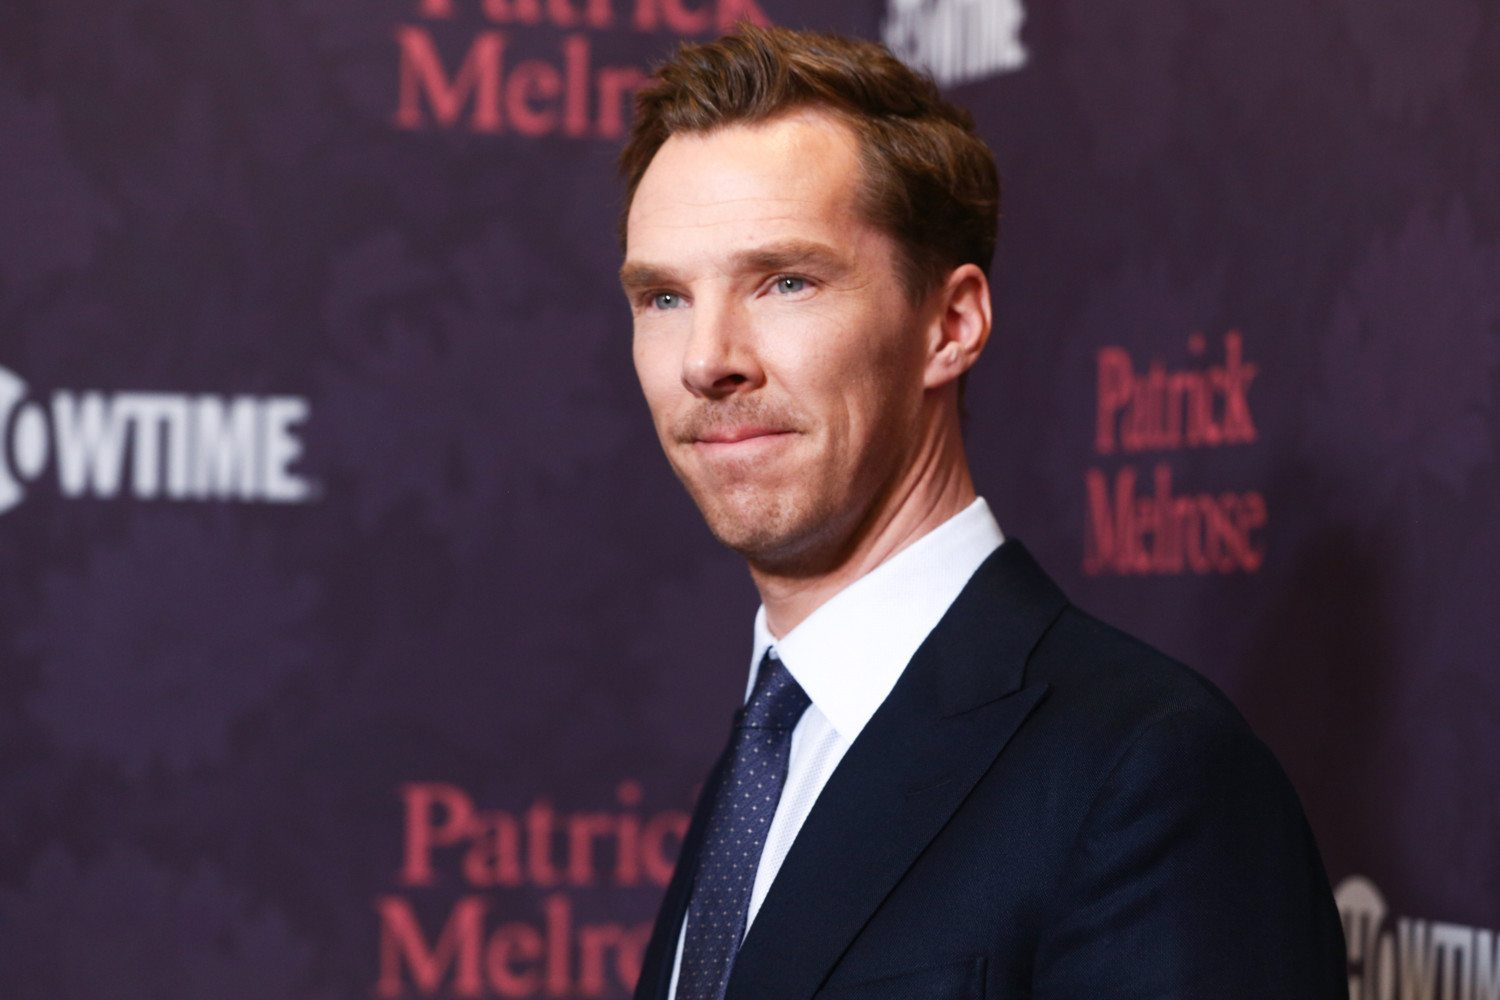 Premiere Of Showtime's 'Patrick Melrose' - Red Carpet